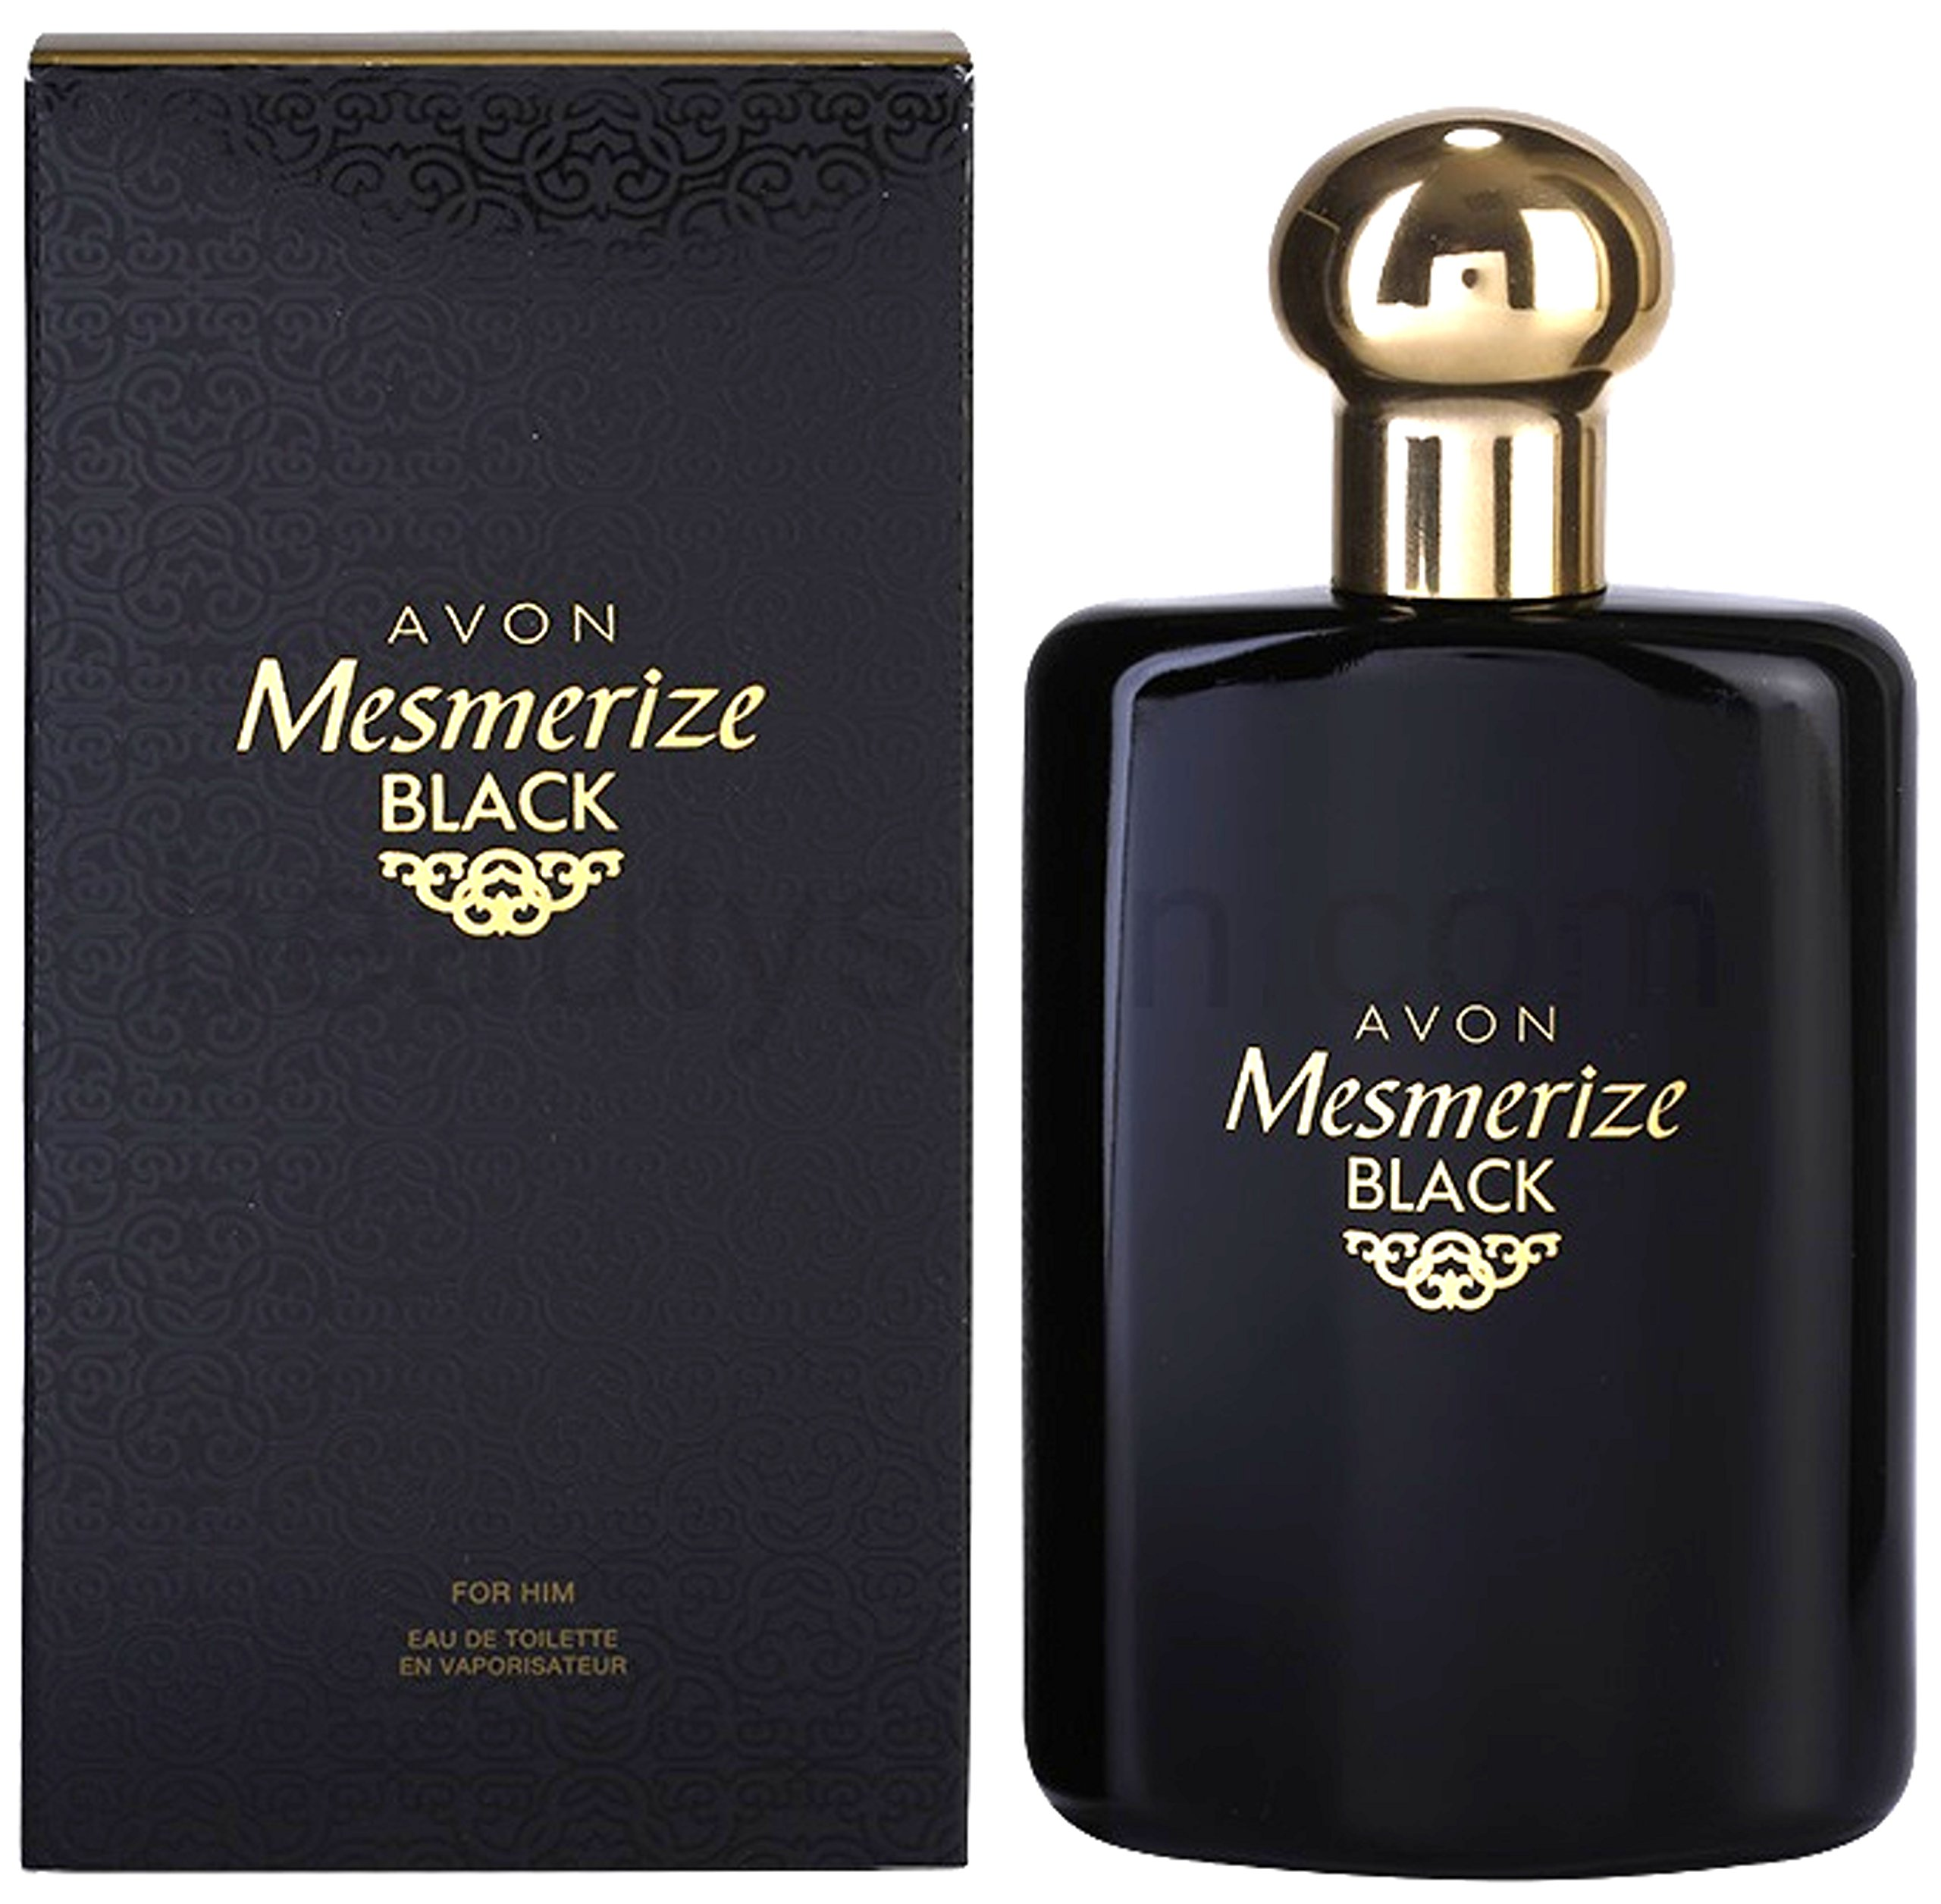 avon black single men If you are seeking to meet men over 50, first ask yourself what kind of gentleman you want to meet you do not want to meet a world traveler if you like to stay at home, nor would you like to meet a sports fan if you have no interest in sports.